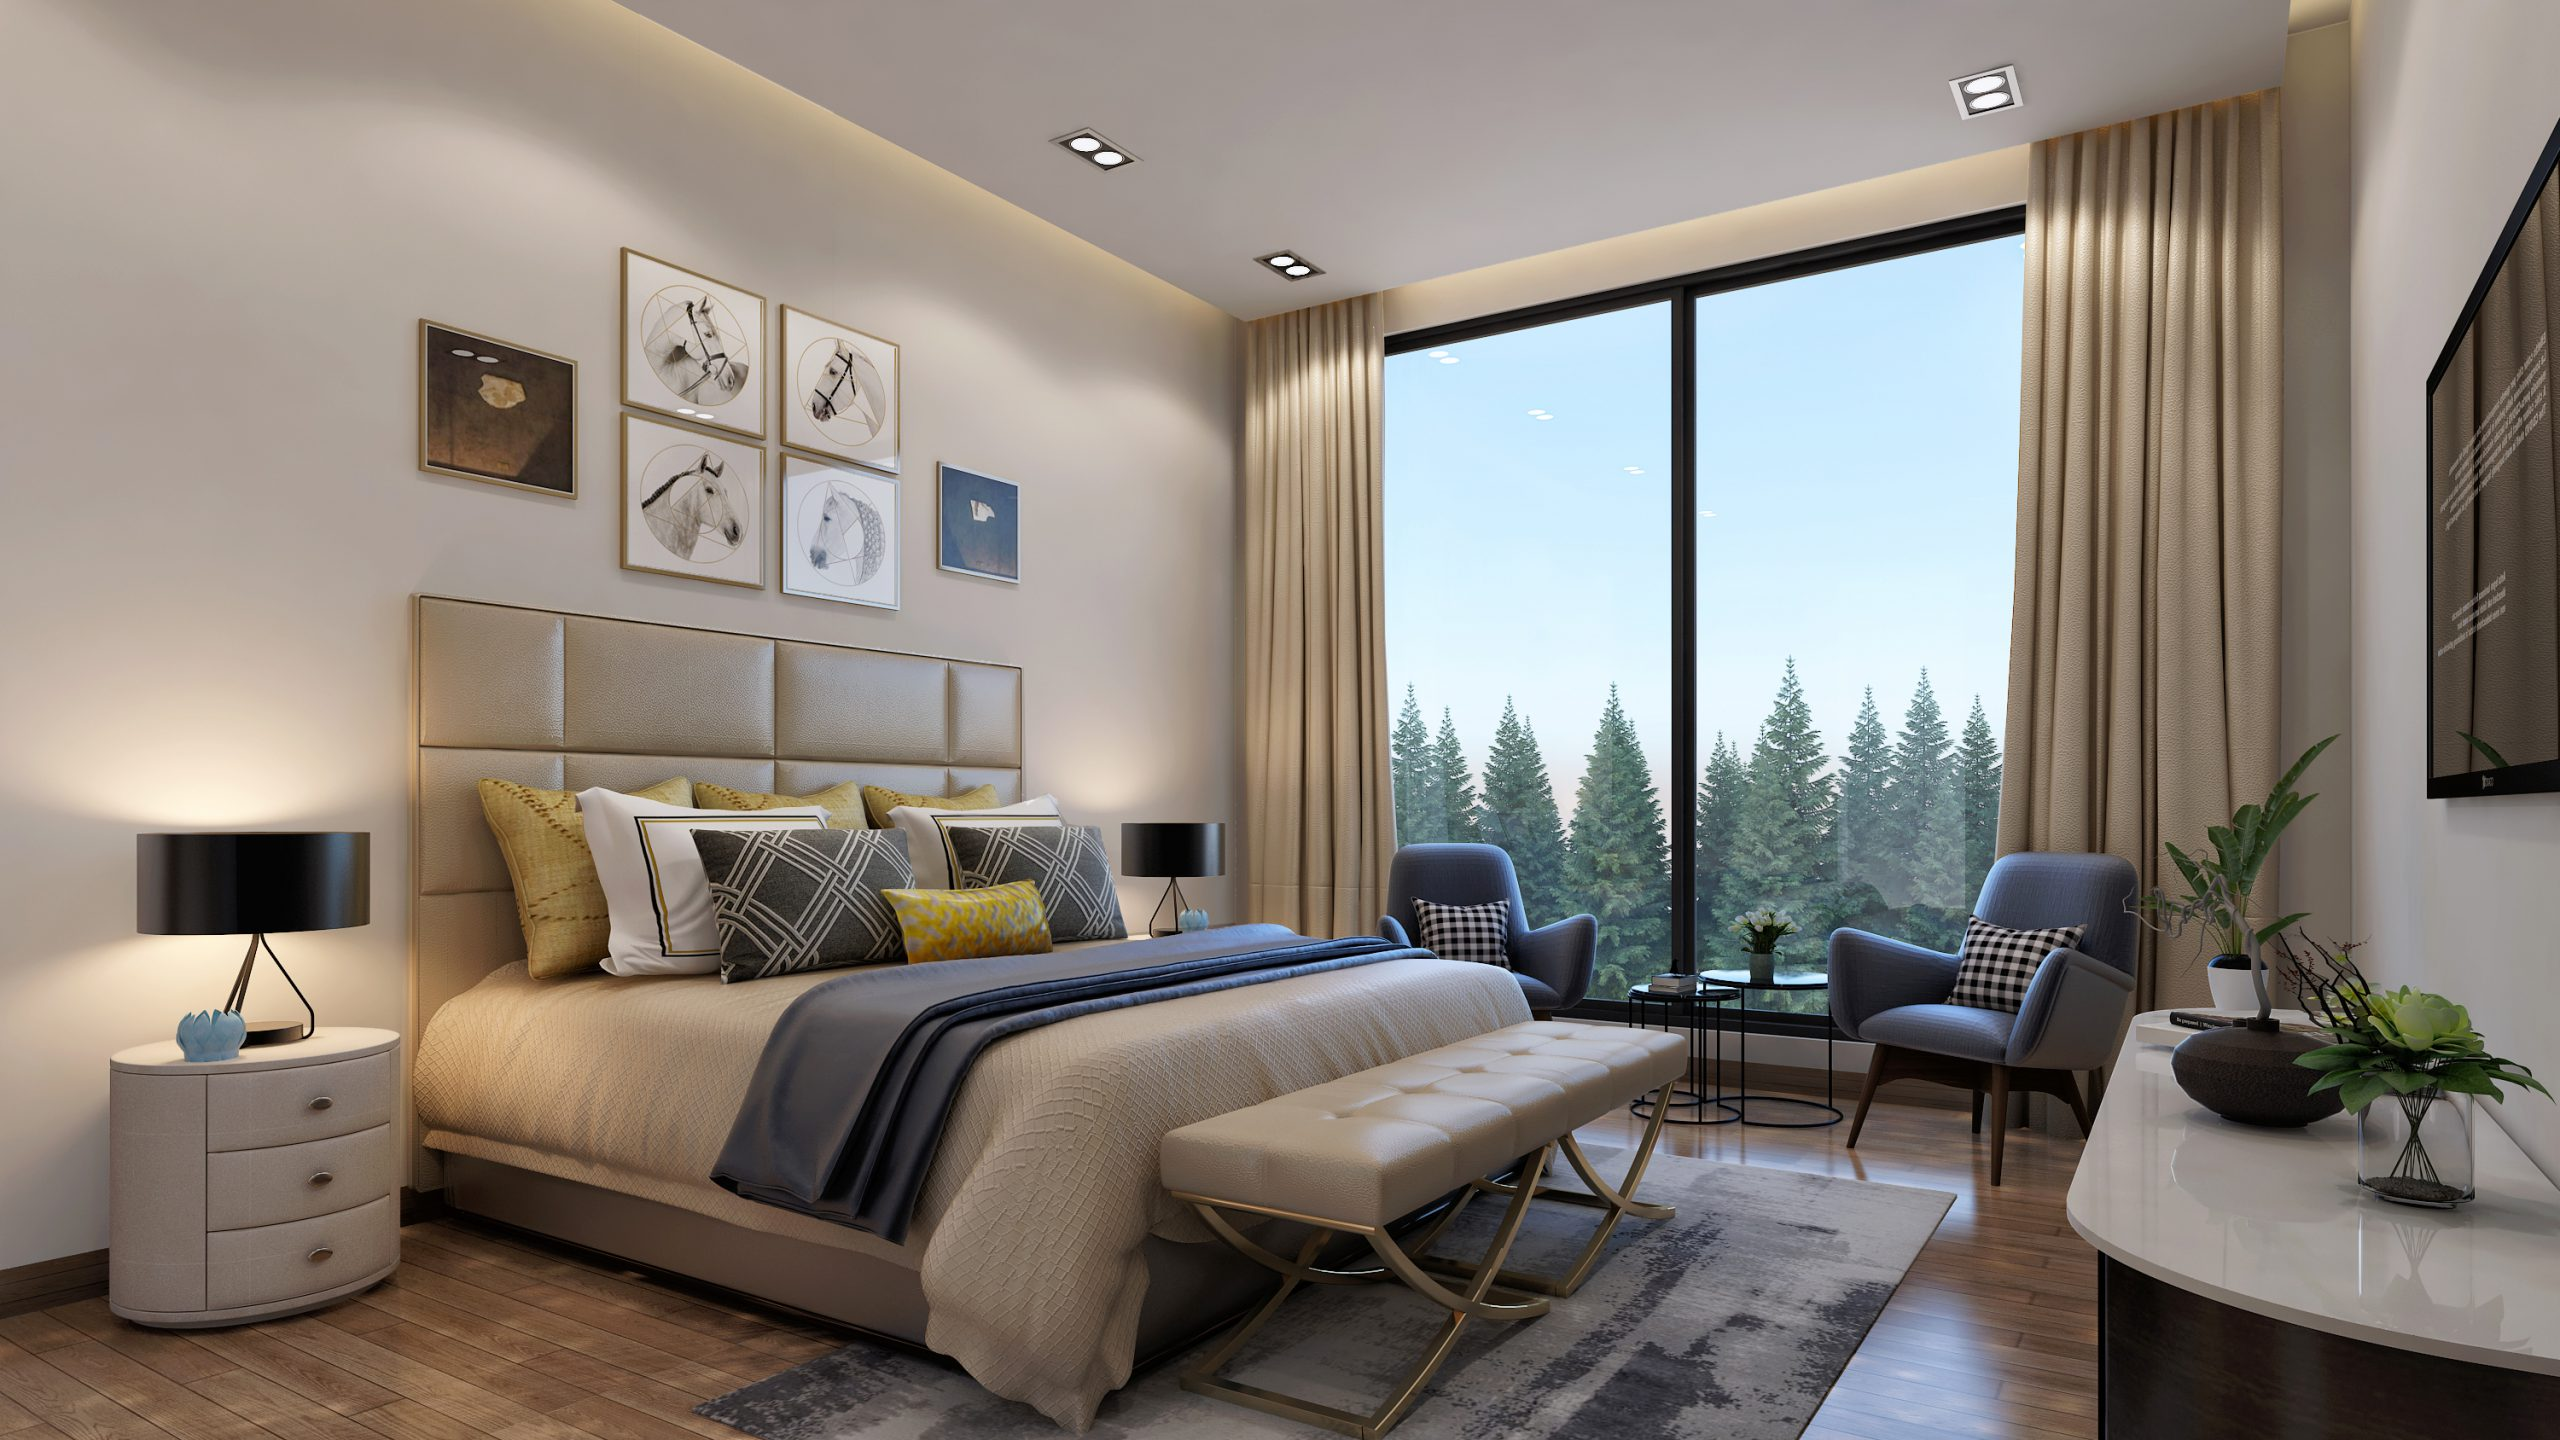 http://pineterraces.co/wp-content/uploads/2021/06/bedroom--scaled.jpg